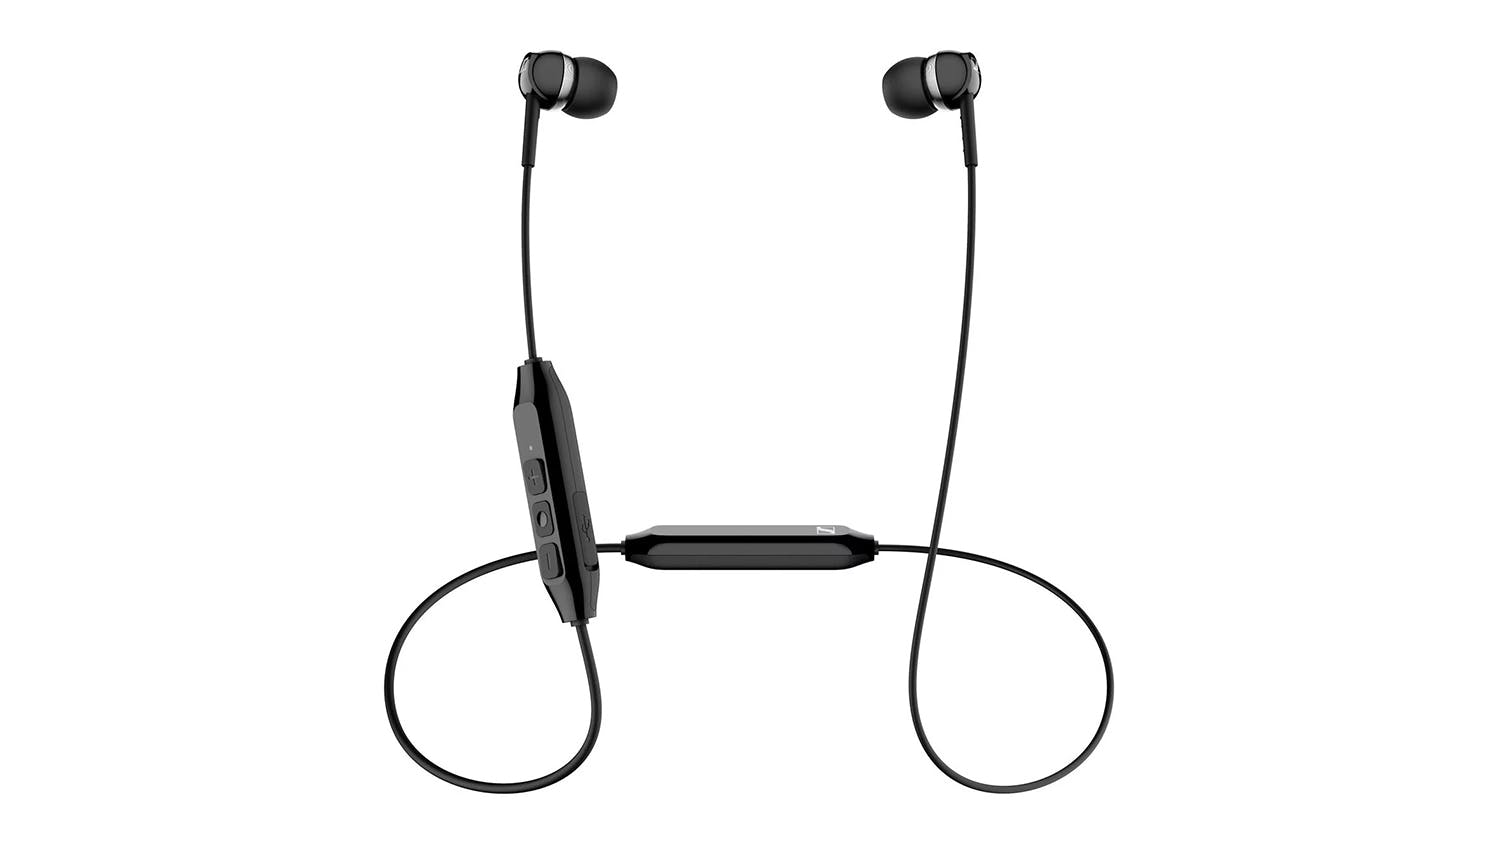 Sennheiser CX150 Wireless Bluetooth In-Ear Headphones - Black